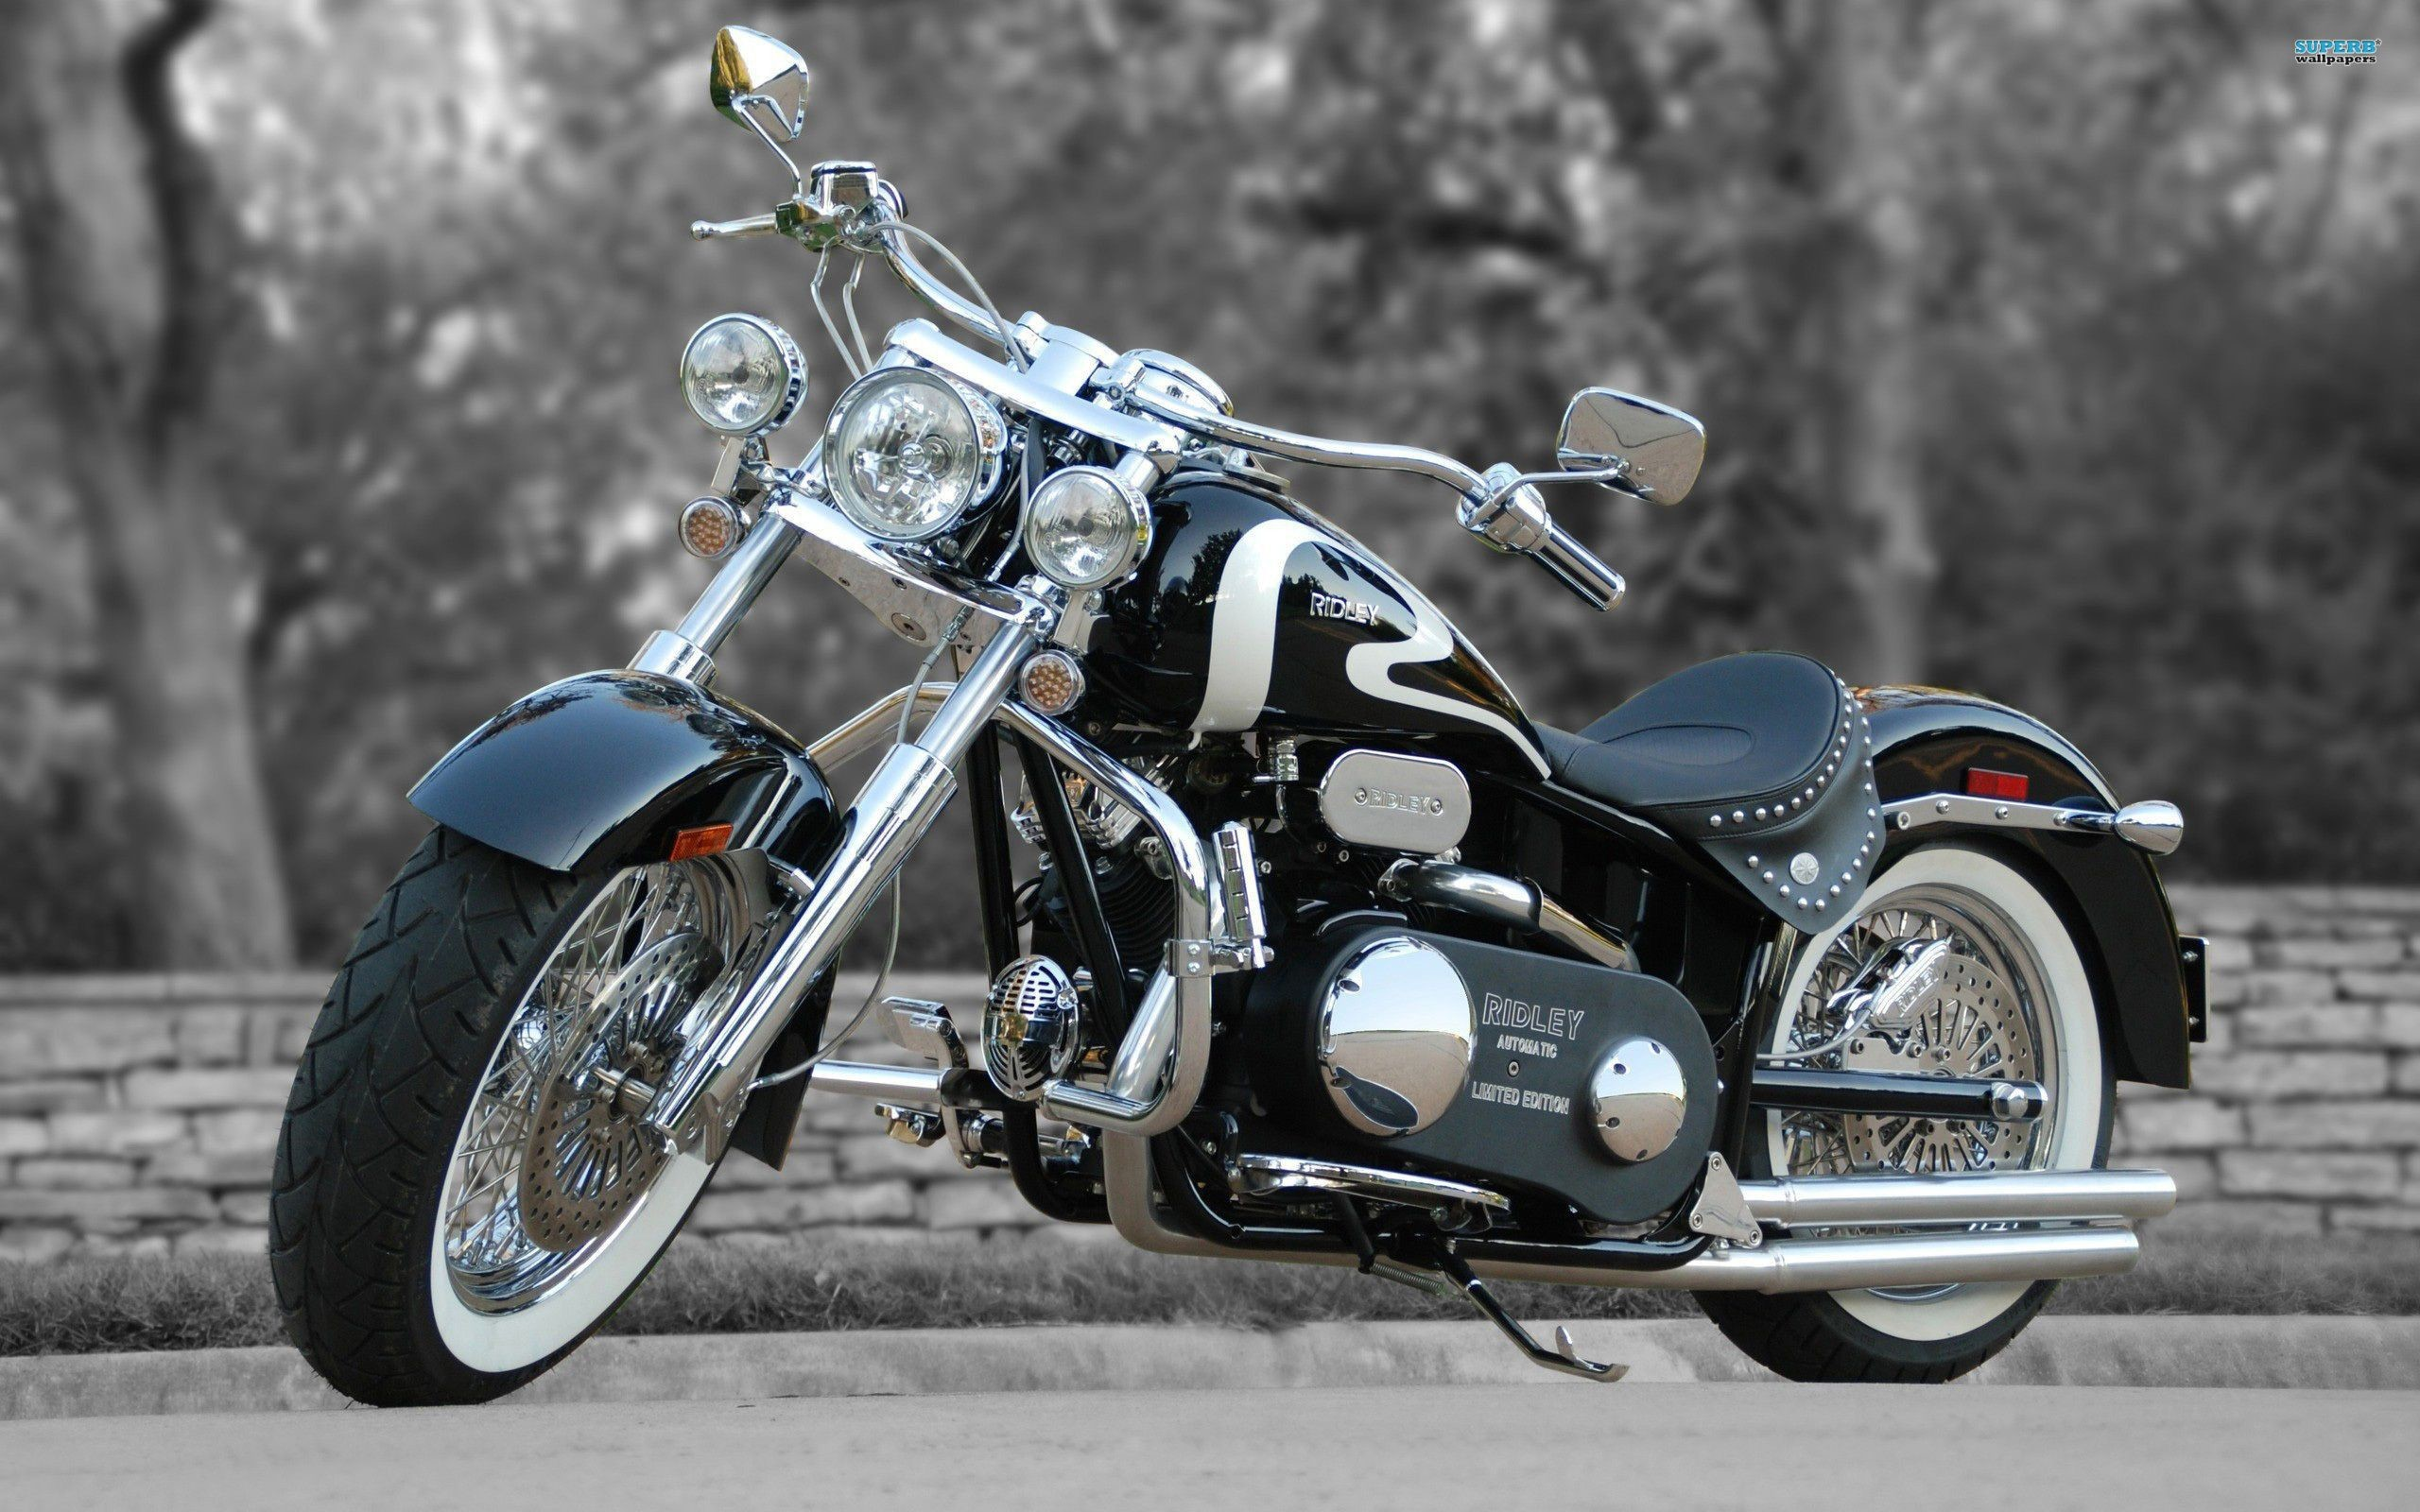 1920x1080 New Harley Davidson Wallpapers HD Full Pictures